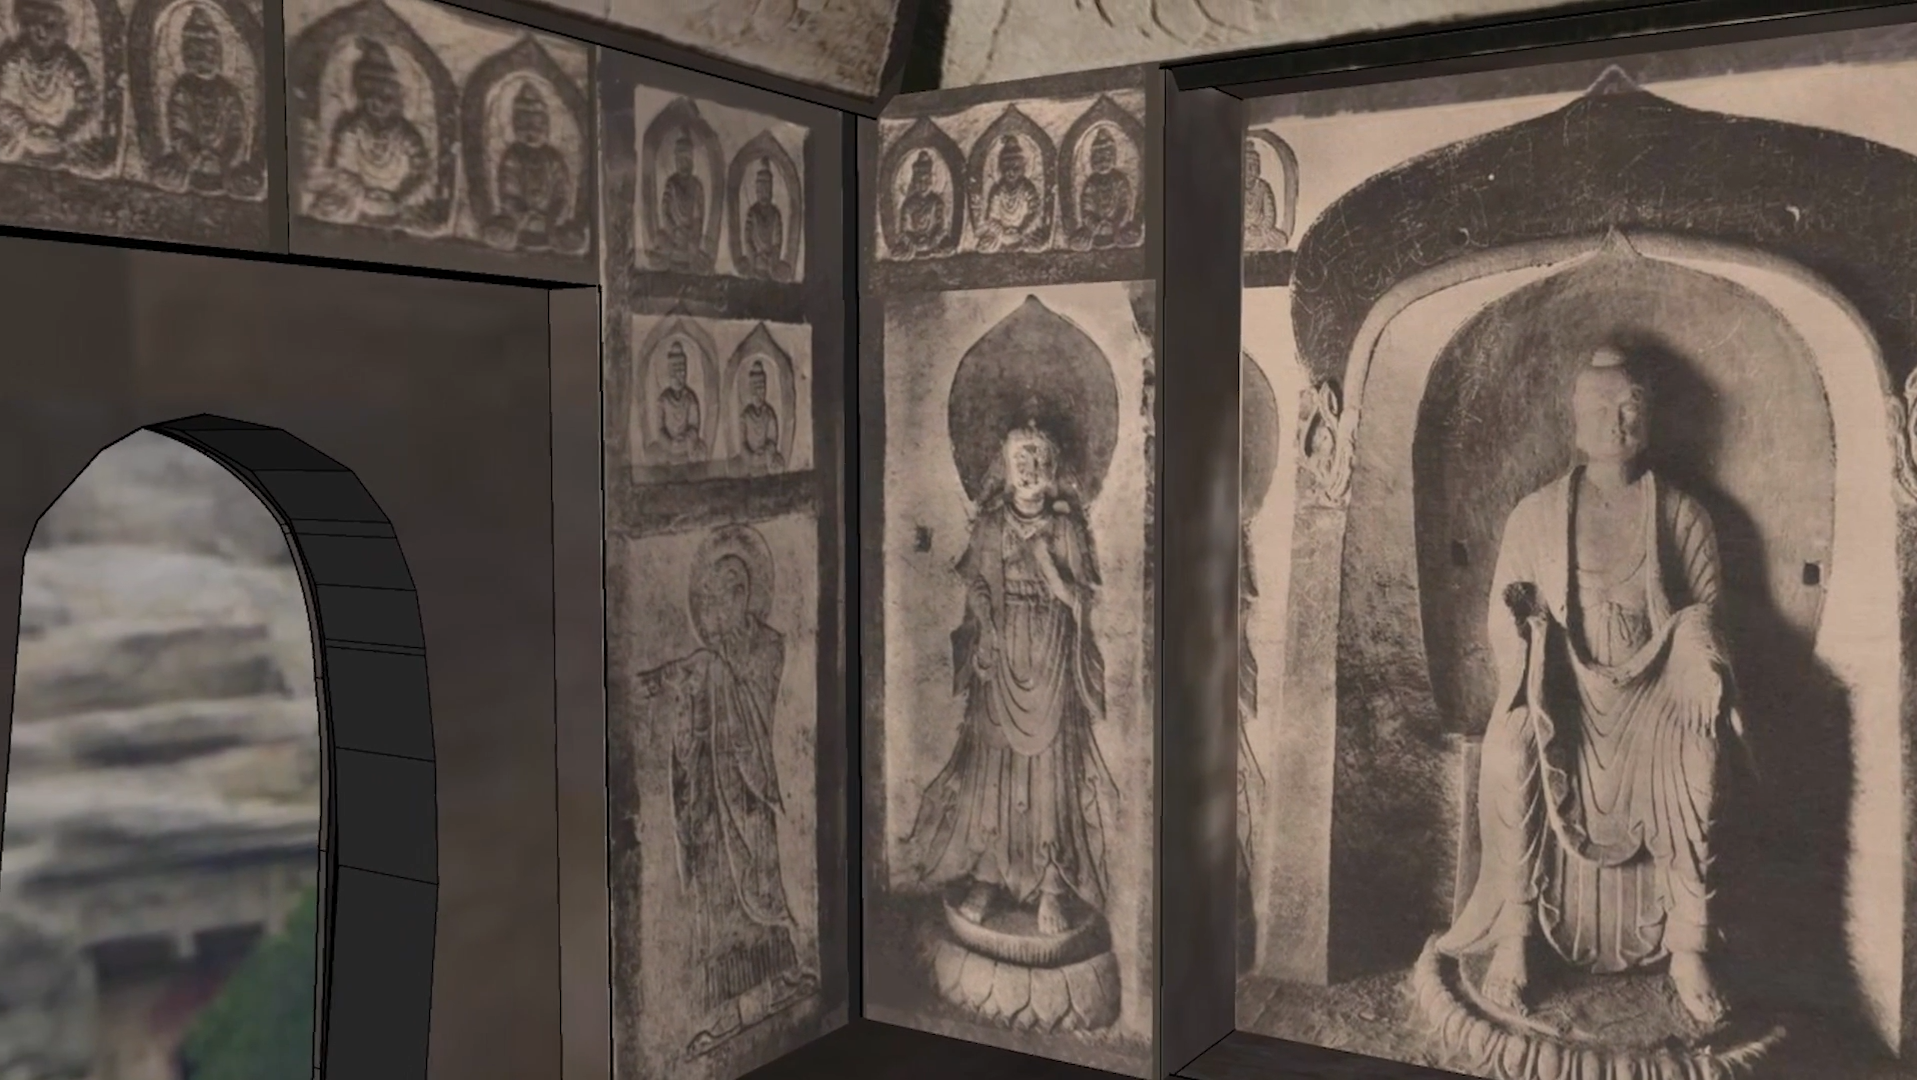 This digital rendering includes photographs of stone wall carvings. The rendering shows a corner of the room where two walls meet. The wall on the left has an arched doorway, and above it, a row of repeated carvings of a seated figure. To the right of the door, in the corner, is a carving of a standing robed figure. In the same corner is a slightly larger robed standing figure, in high relief on a pedestal. Just to the right of that figure is an even larger robed figure, also in high relief, of a seated Buddha, on a lotus leaf–patterned pedestal.